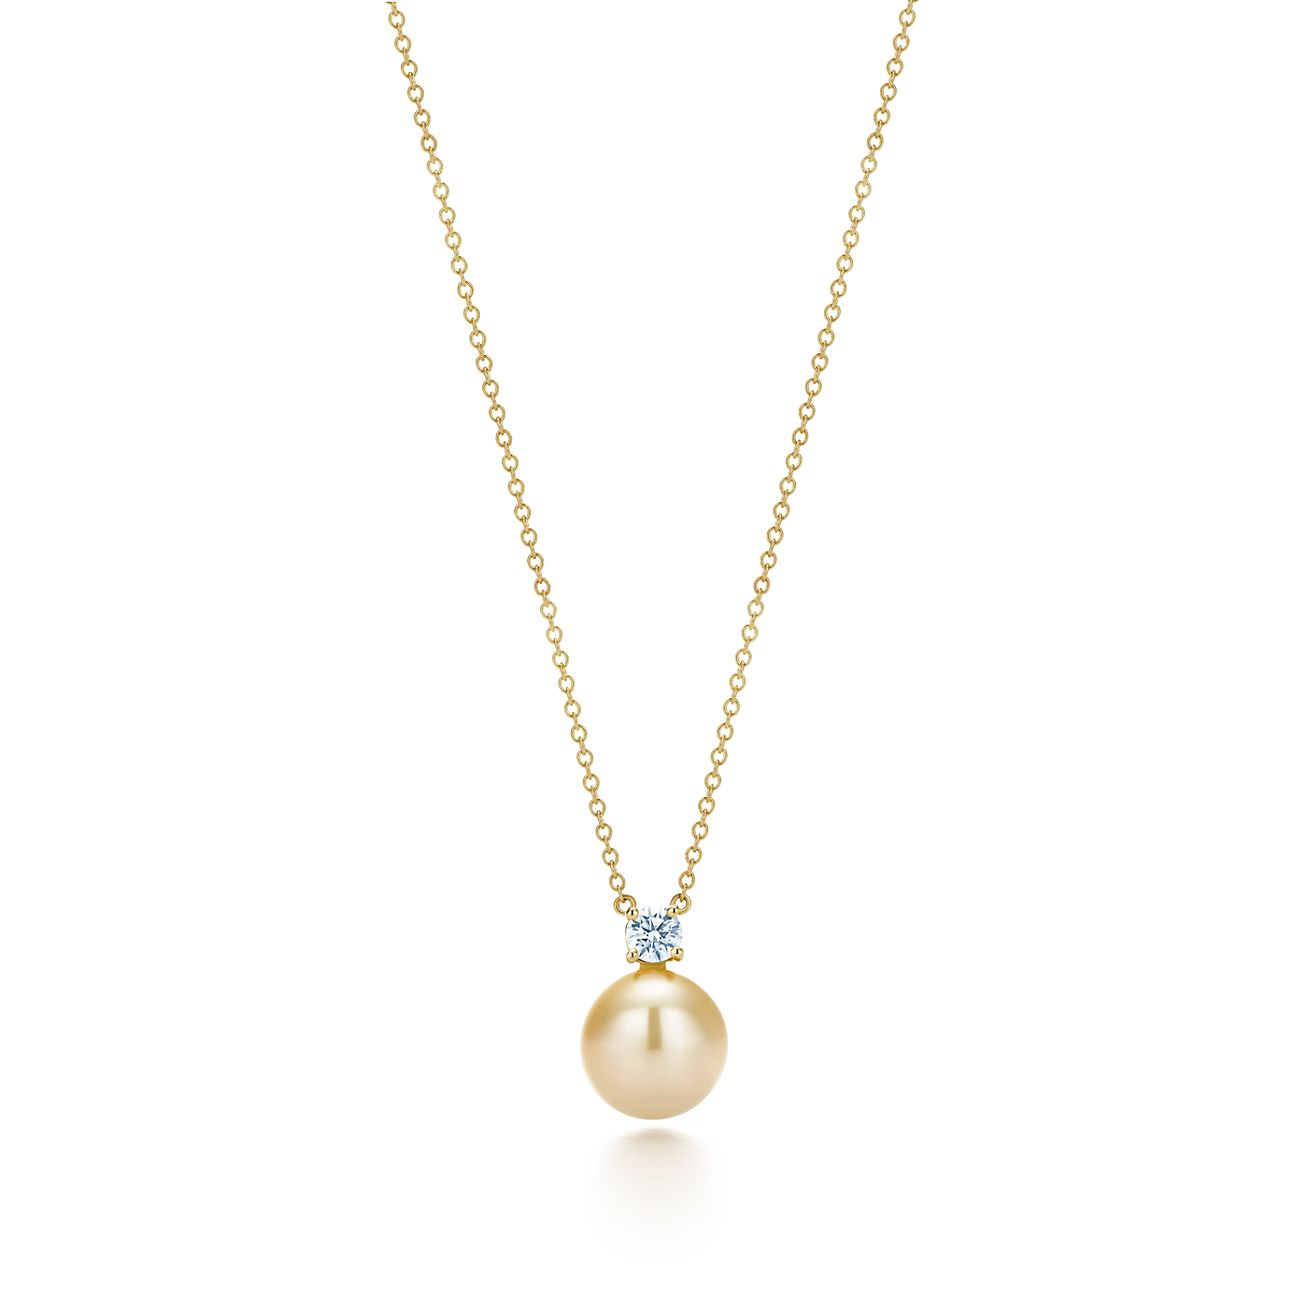 Tiffany south sea pearl pendant in 18k gold with diamonds tiffany south seapearl pendant mozeypictures Choice Image